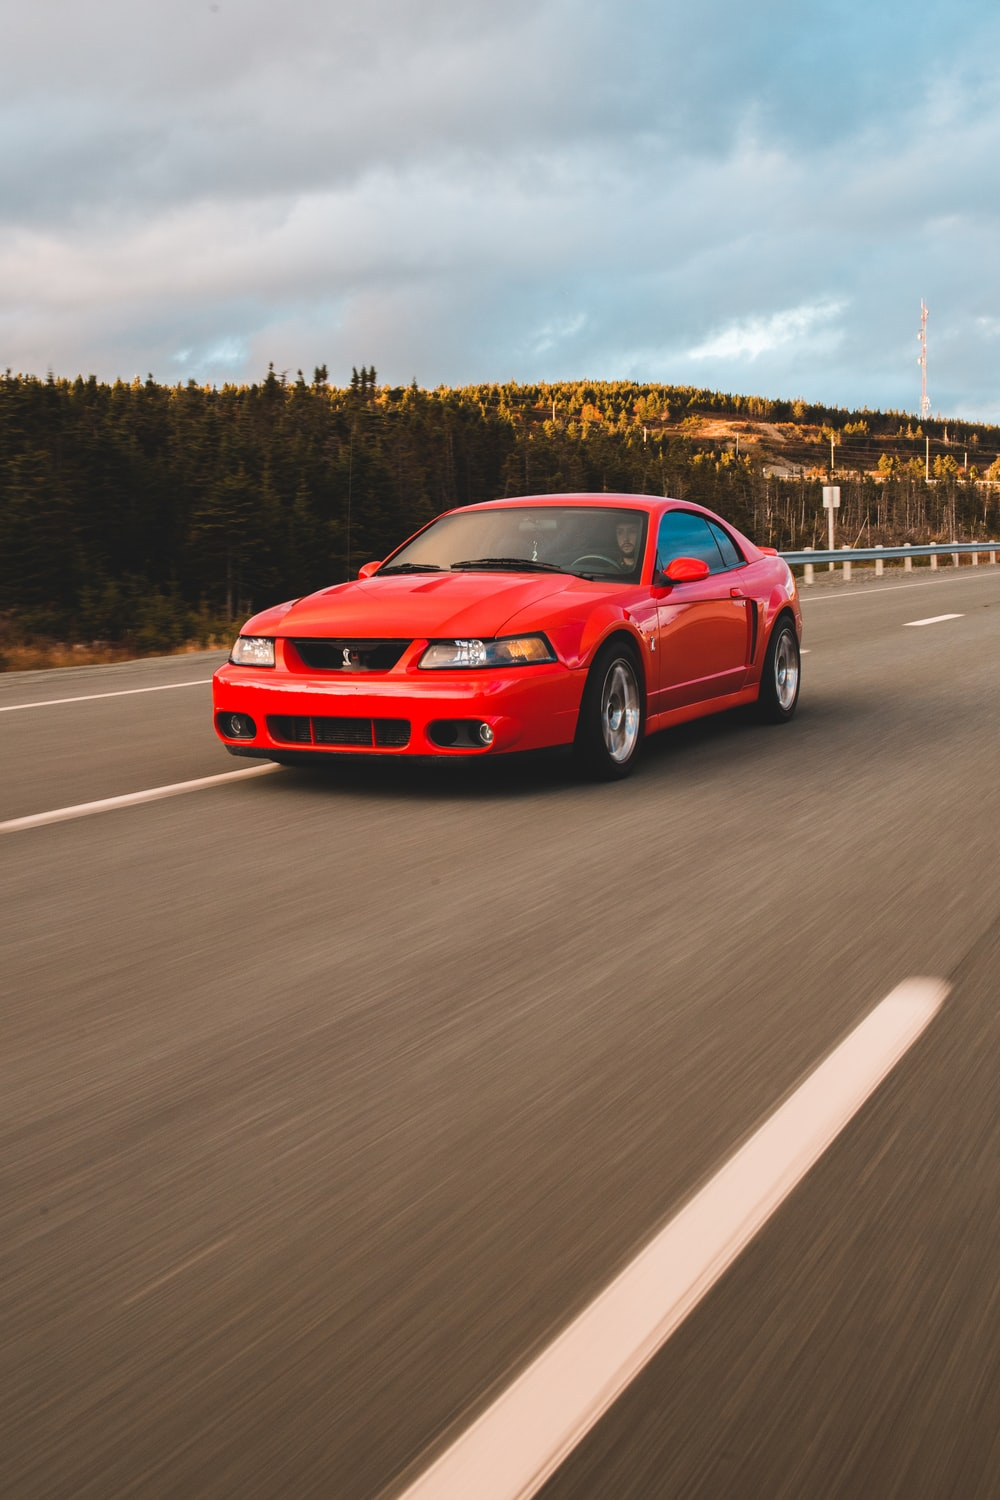 red bmw m 3 on road during daytime